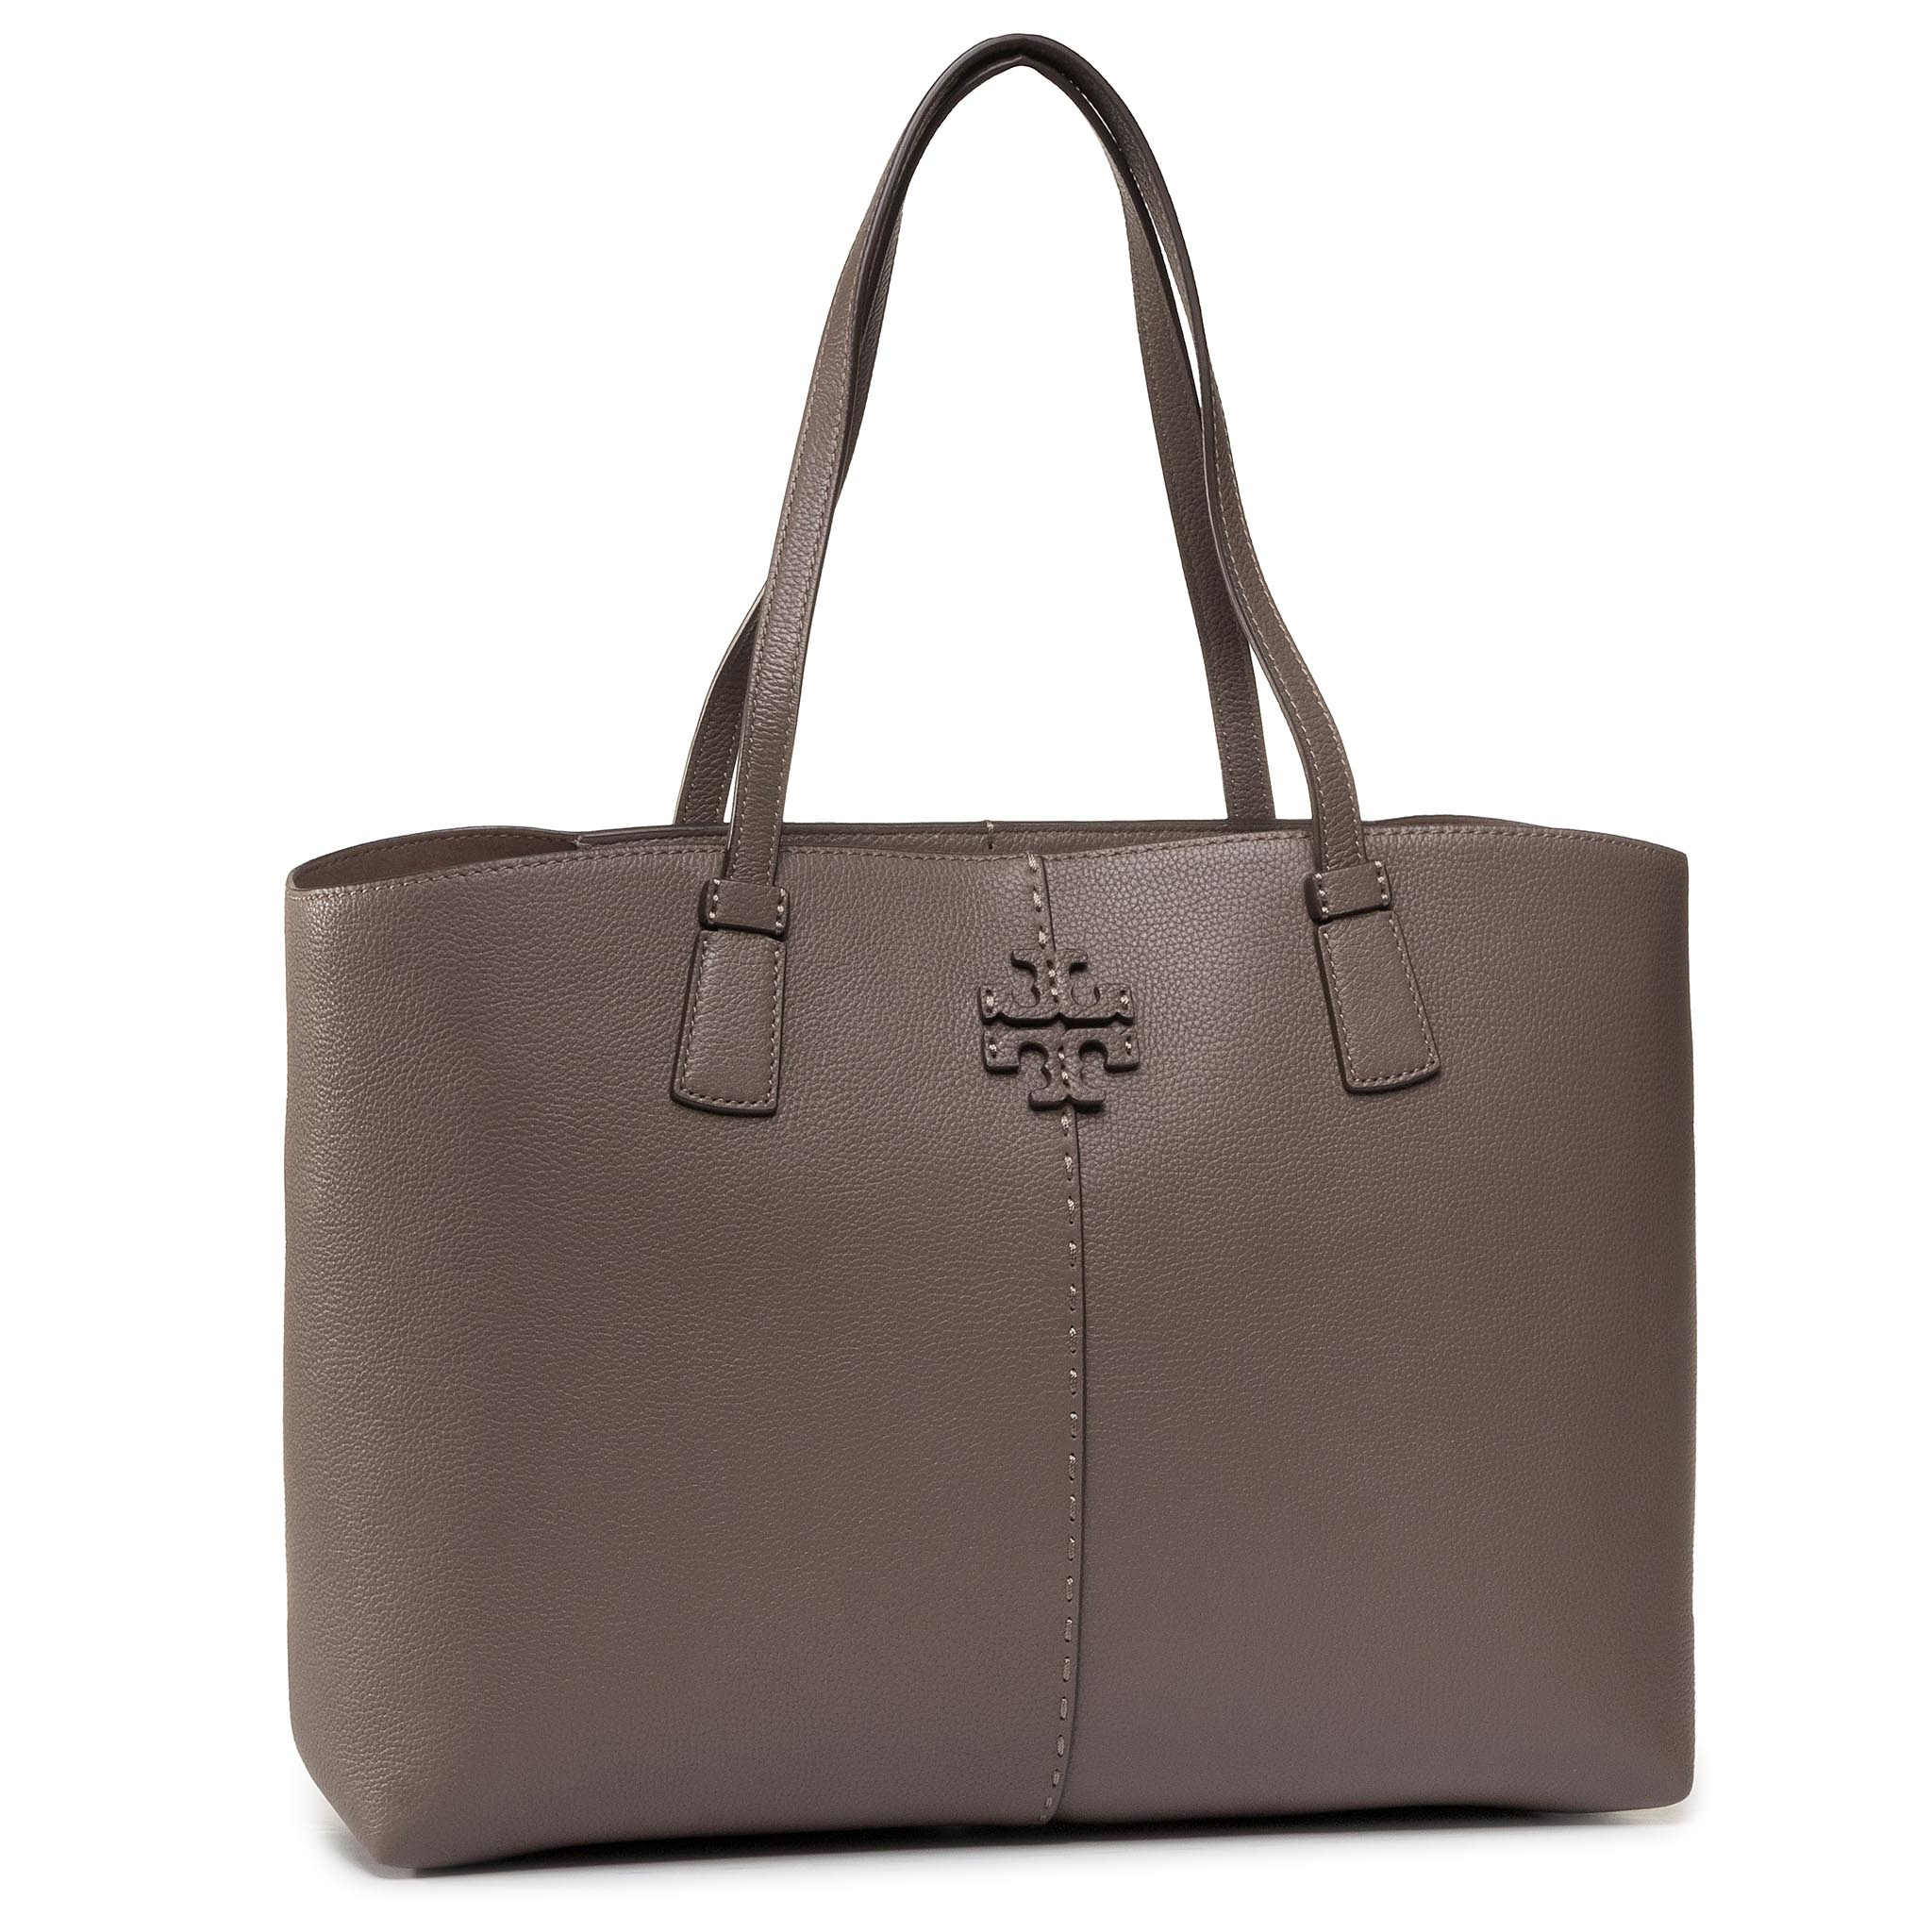 Geantă TORY BURCH - Mcgraw Tote 64454 Silver Maple 963